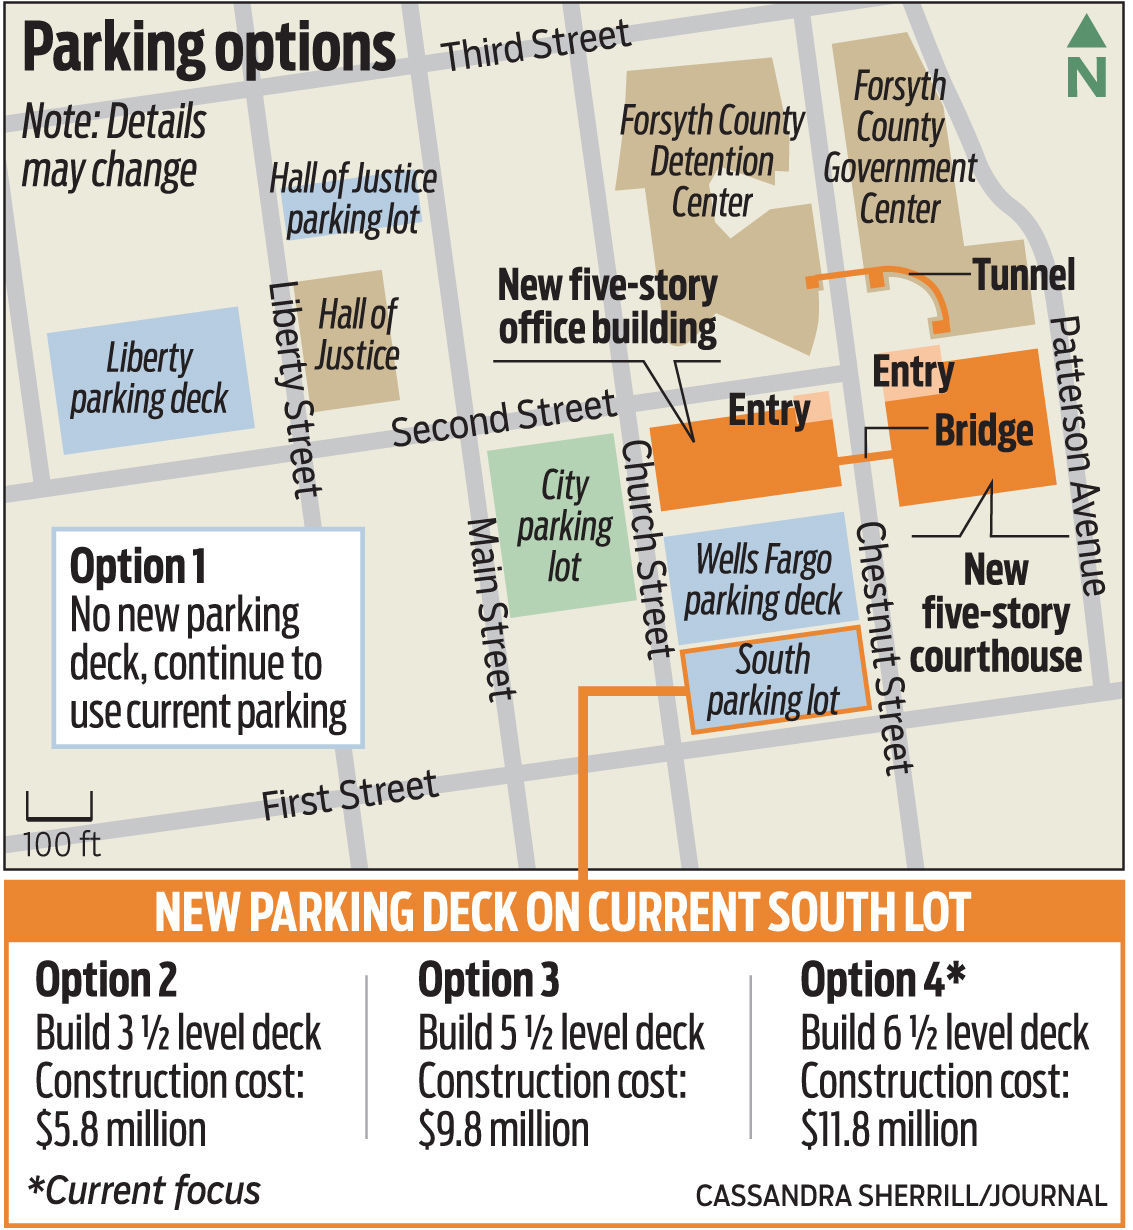 How should Forysth County pay for a courthouse parking deck